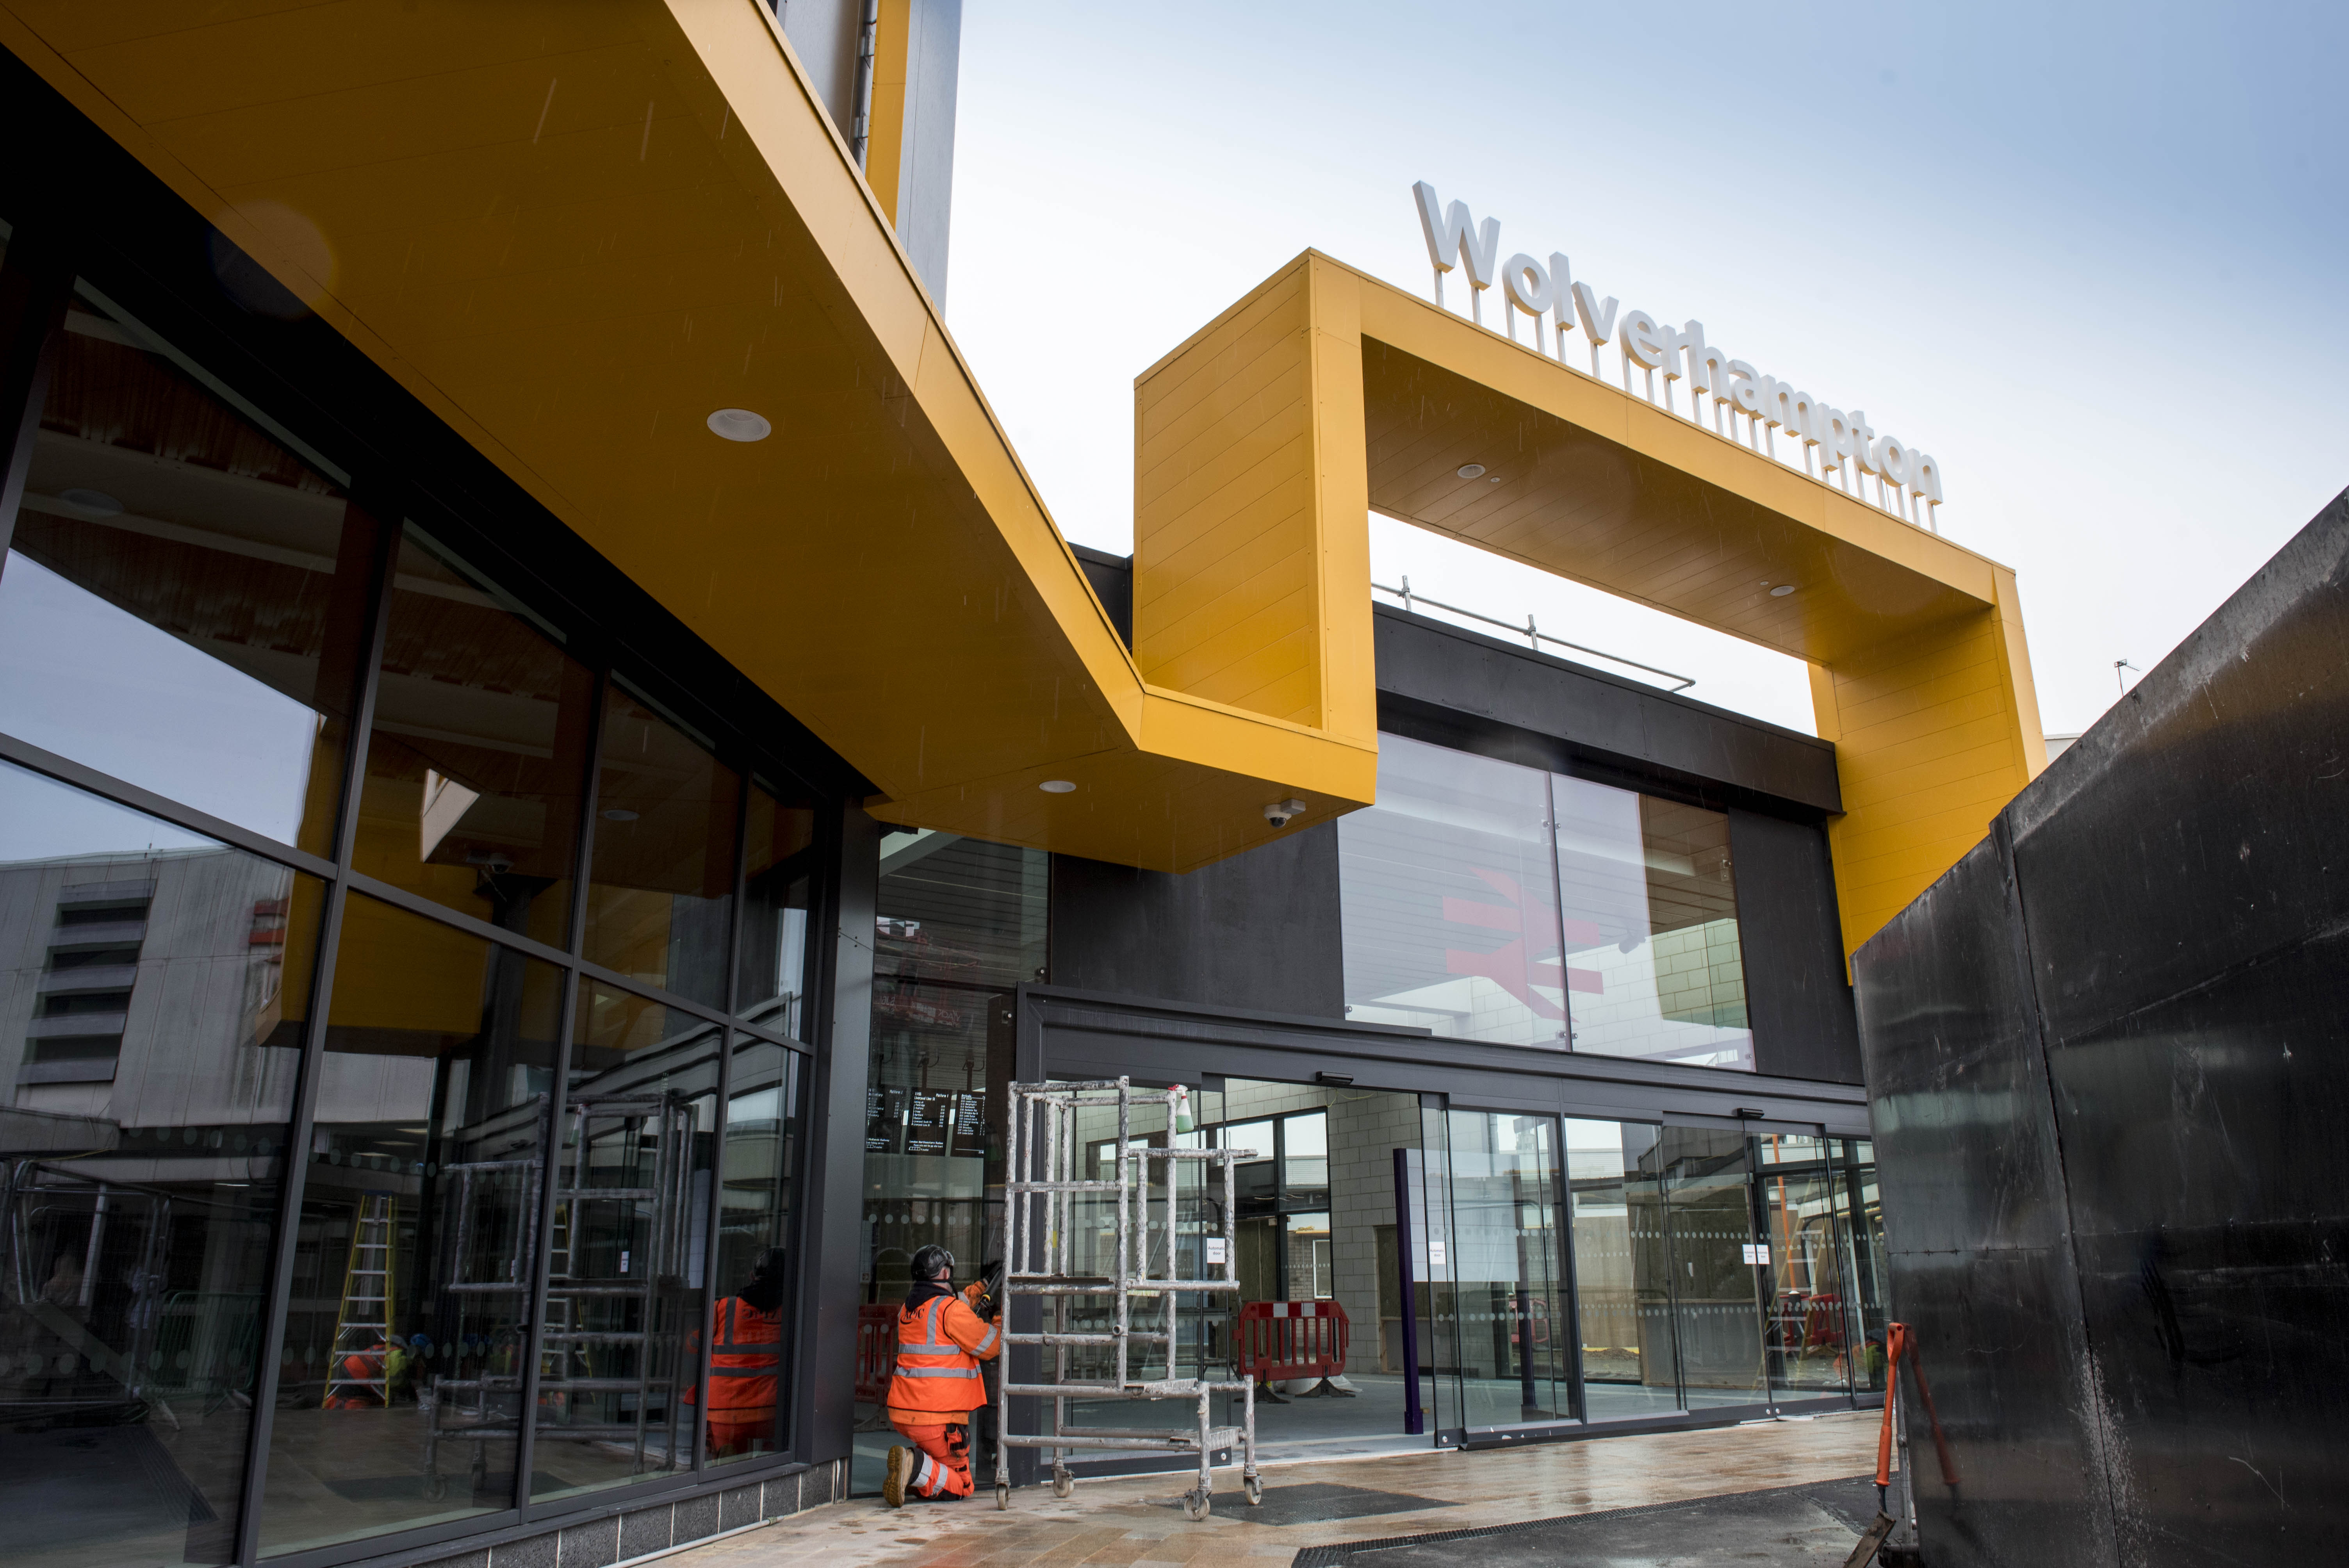 Phase one of Wolverhampton's new railway station set to open